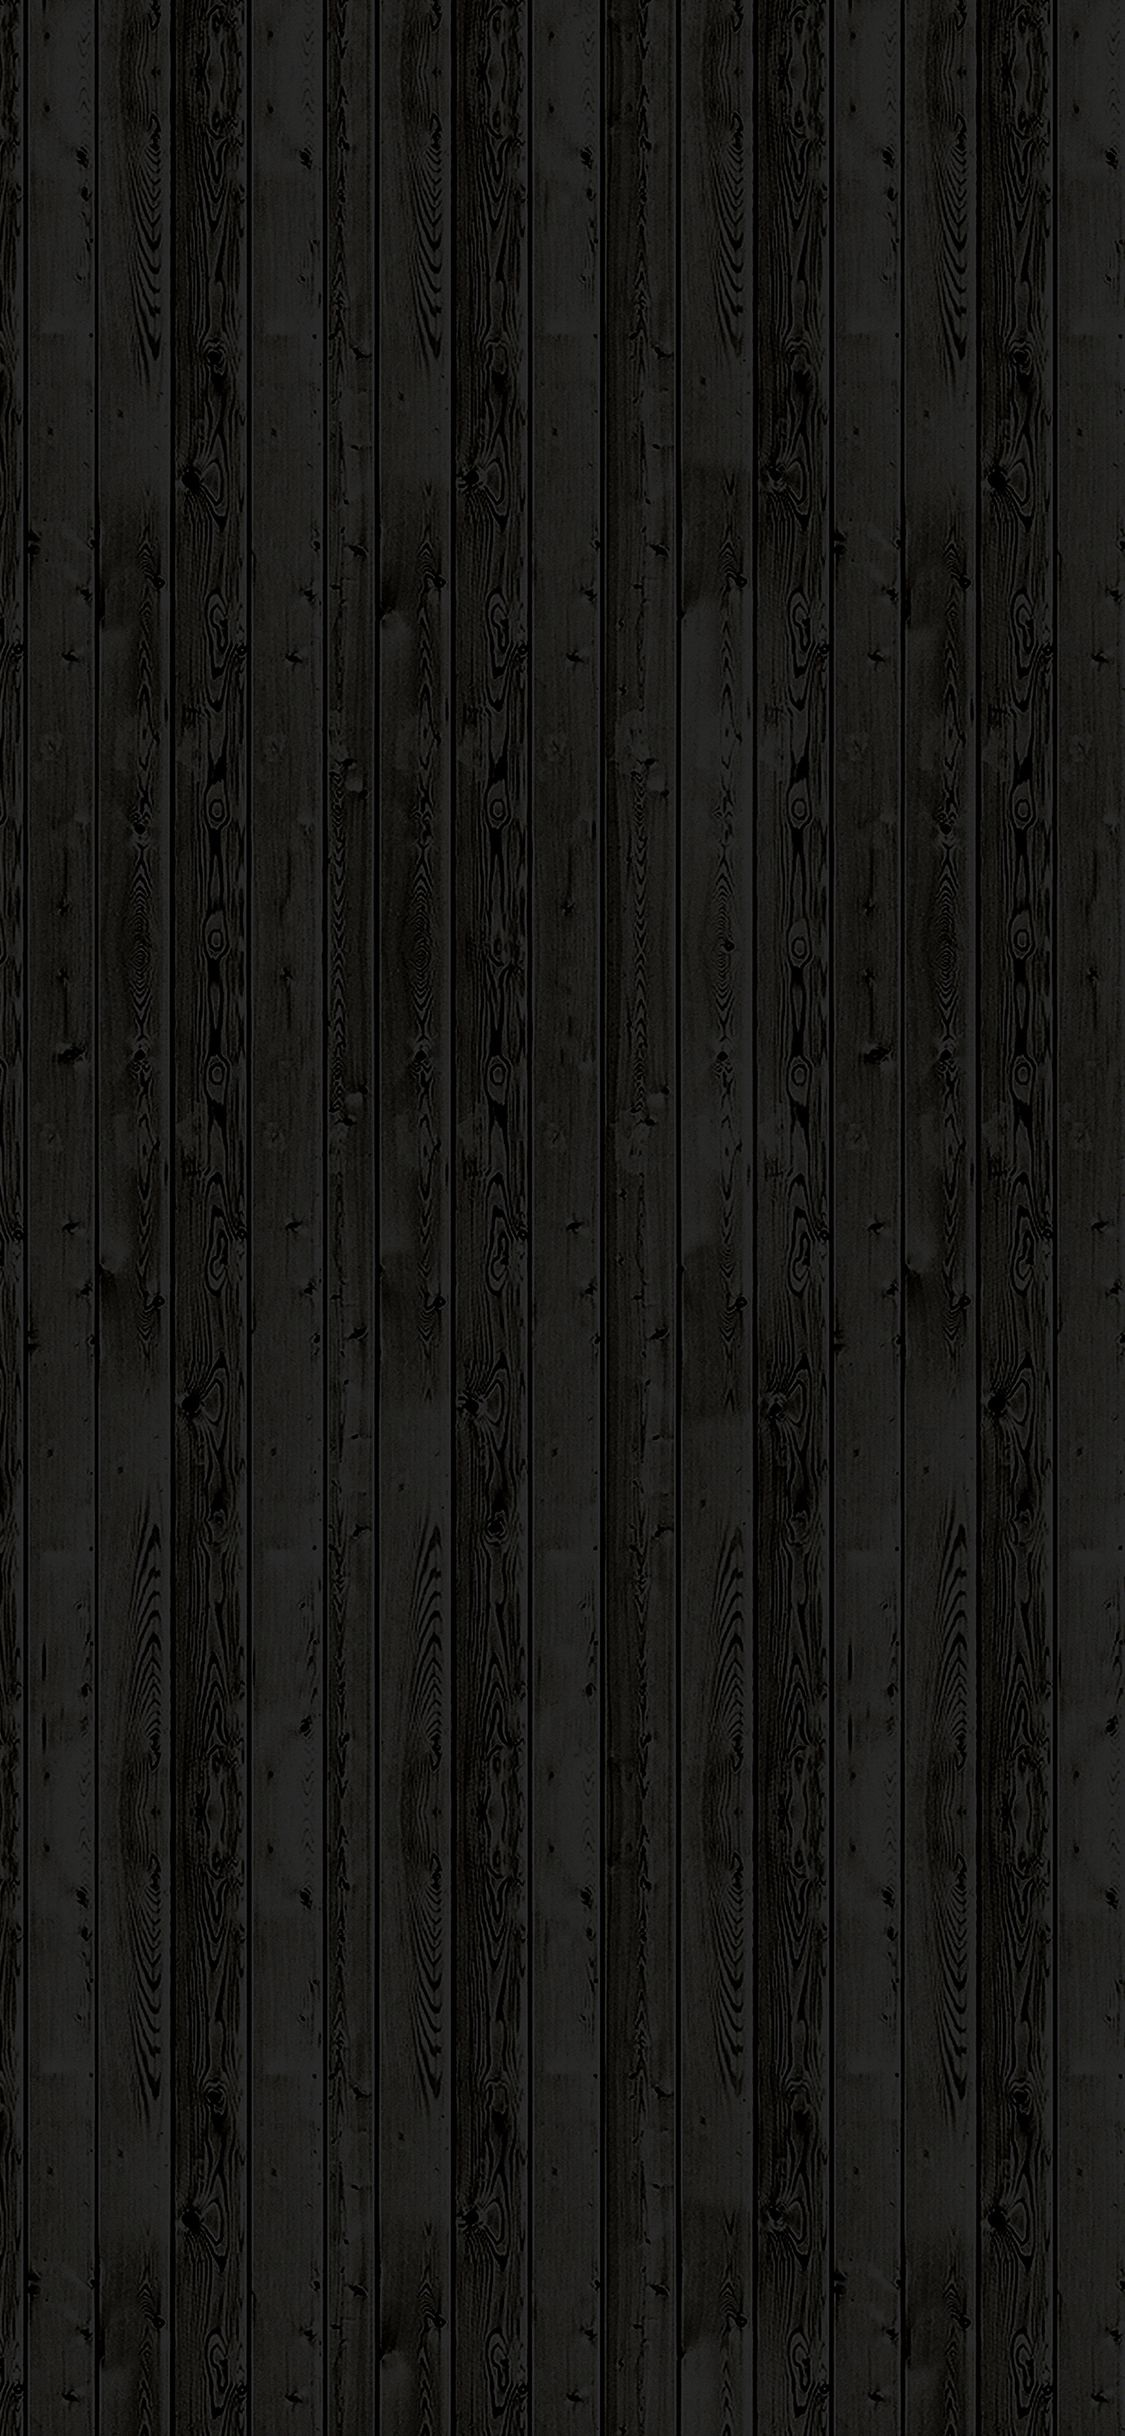 Iphone x wallpaper wood Download free HD images and pictures